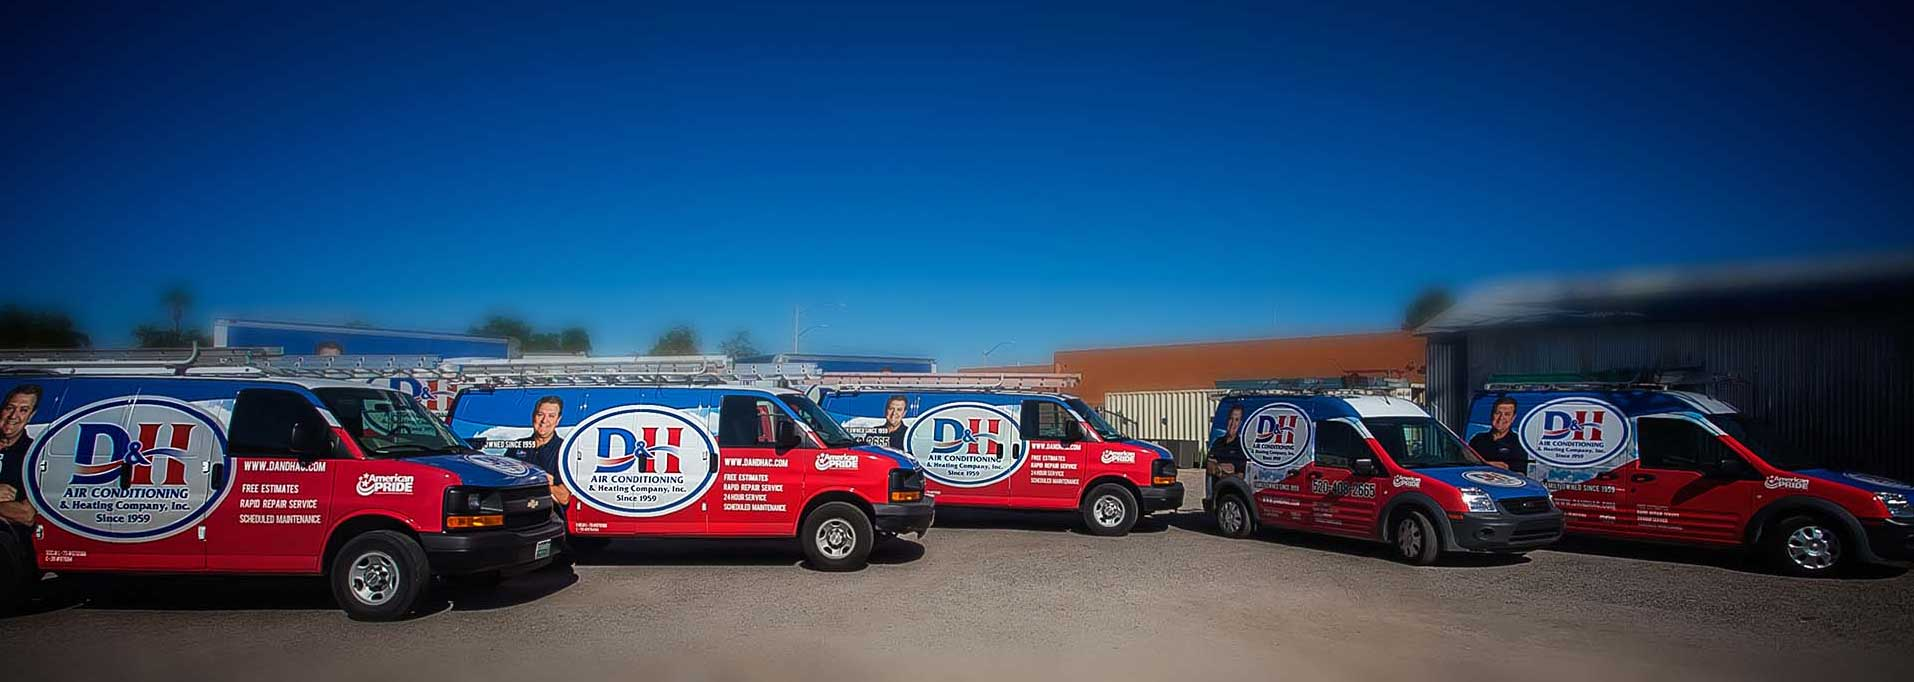 D&H AC Fleet: Loaded with Parts for Air Conditioning Repair